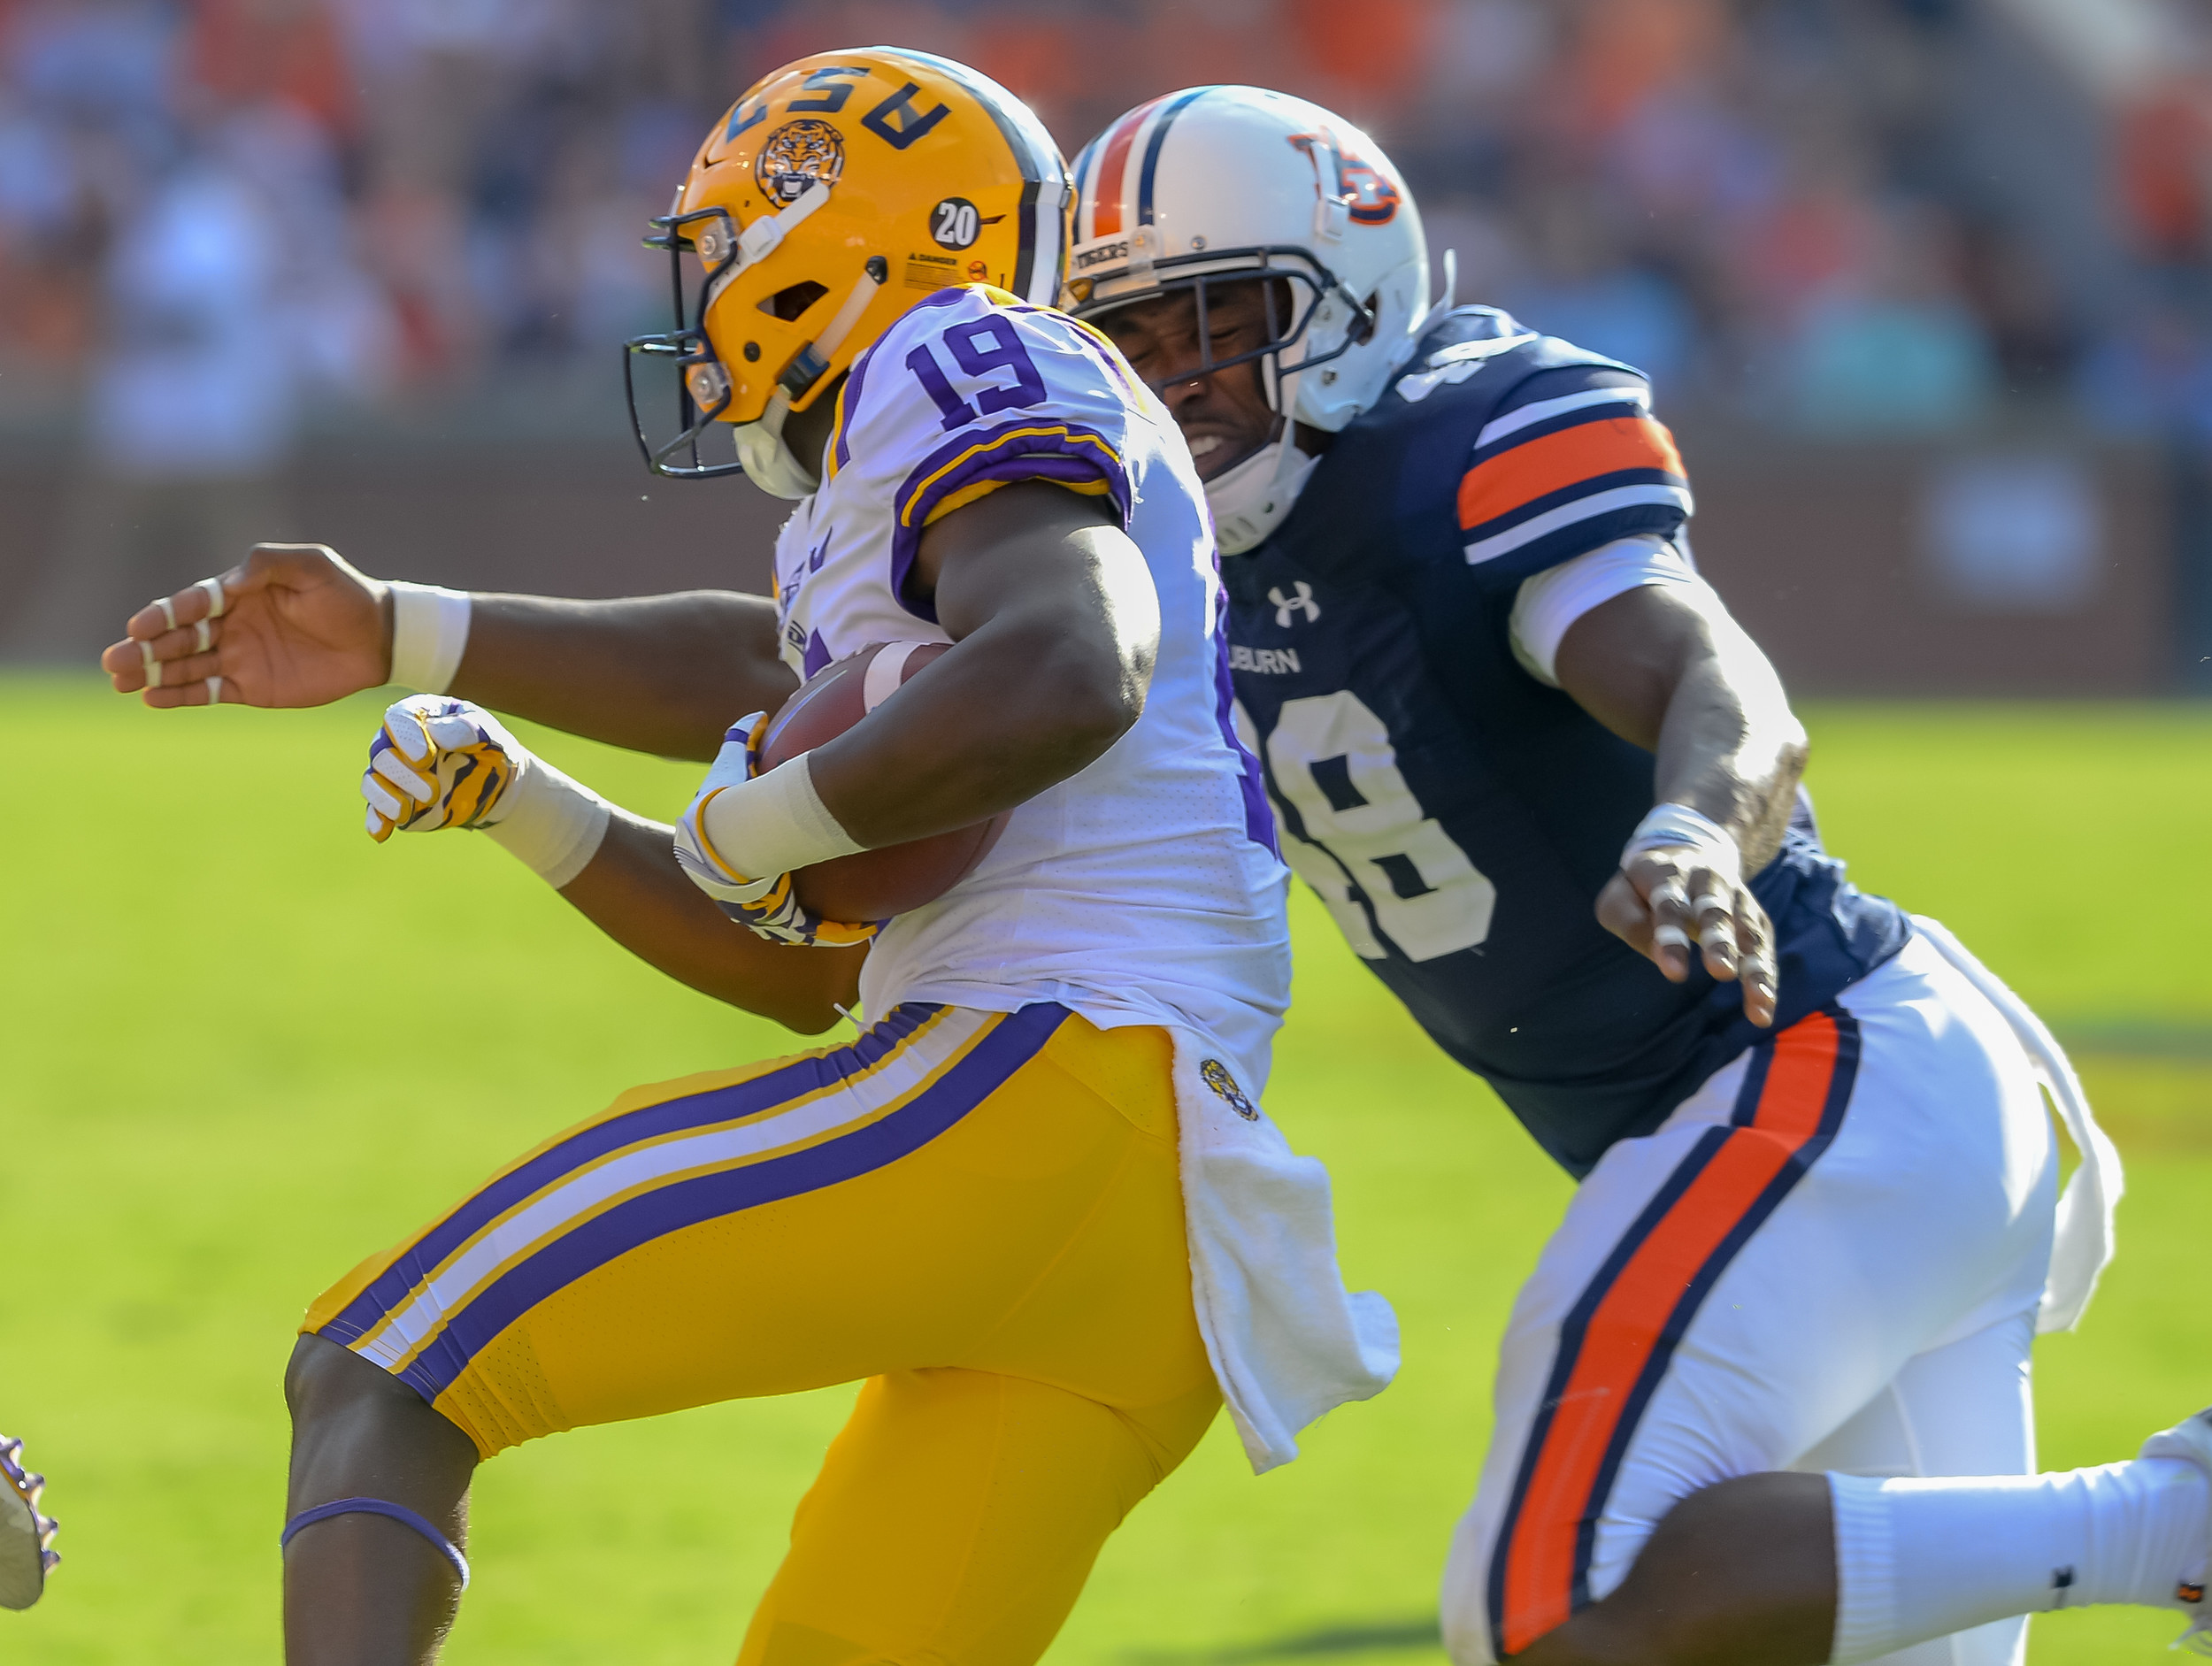 LSU Tigers wide receiver Derrick Dillon (19) is brought down by Auburn Tigers linebacker Montavious Atkinson (48) during the second half of Saturday's game, at Jordan Hare Stadium in Auburn. (Contributed by Jeff Johnsey)